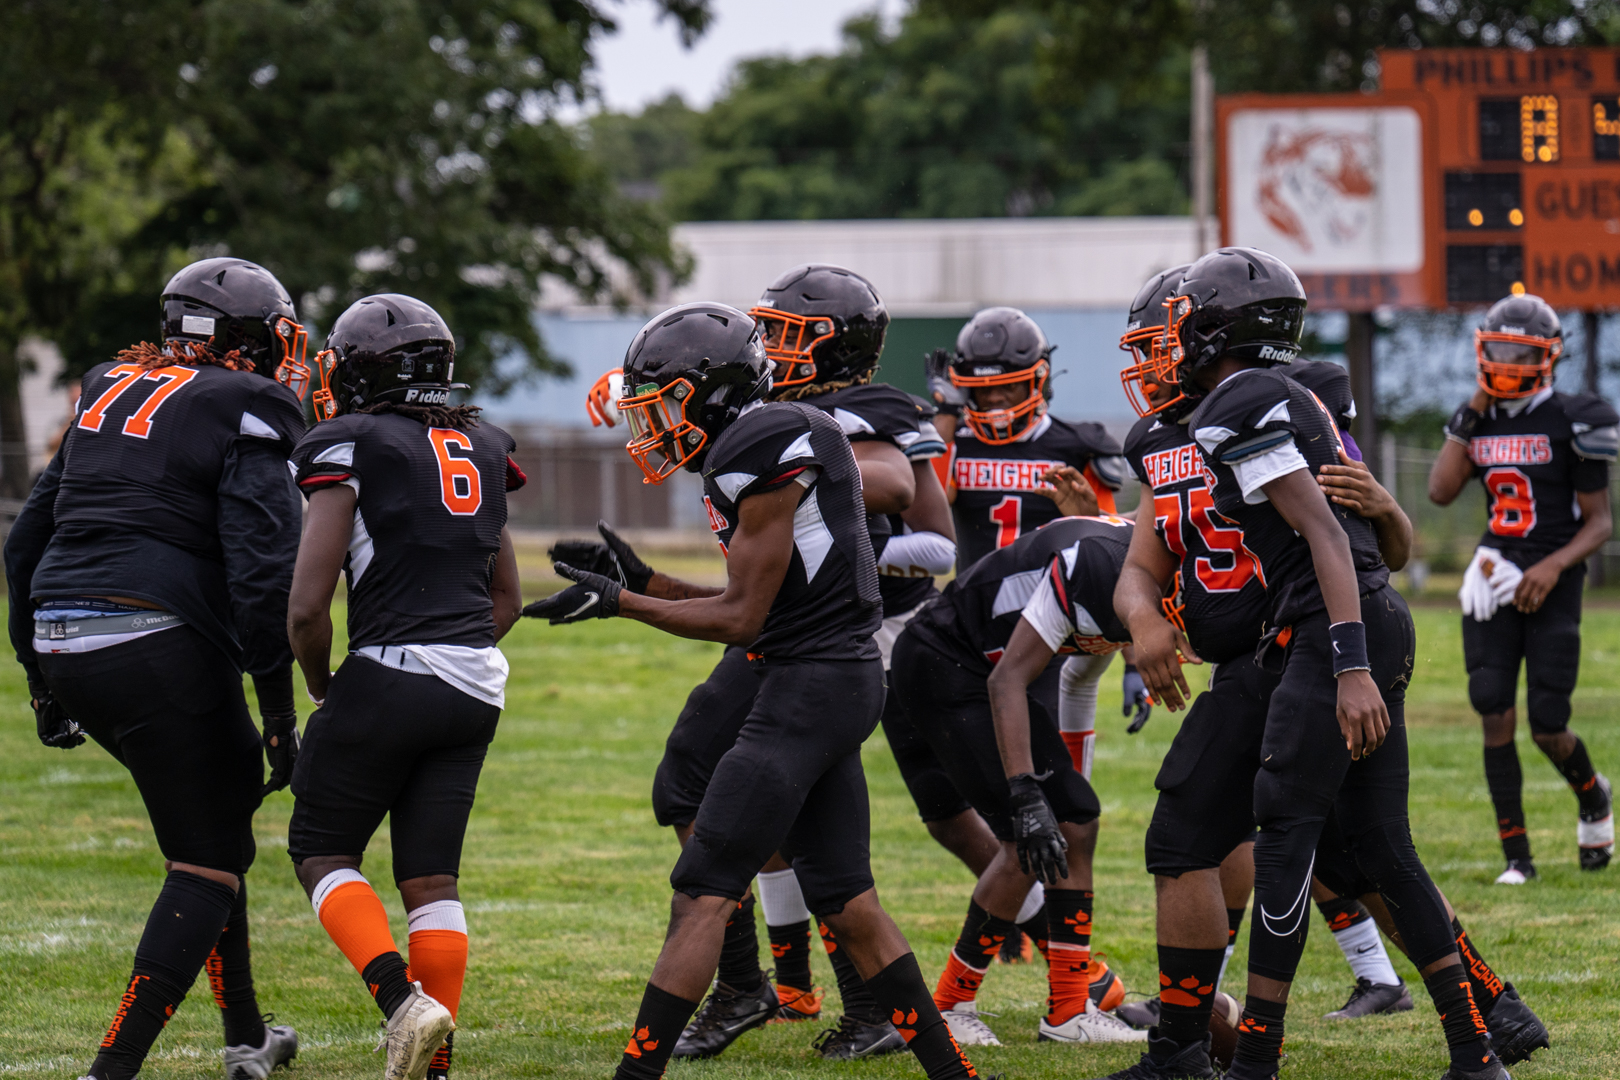 [VIDEO] Muskegon Heights football highlights from Week 2 win